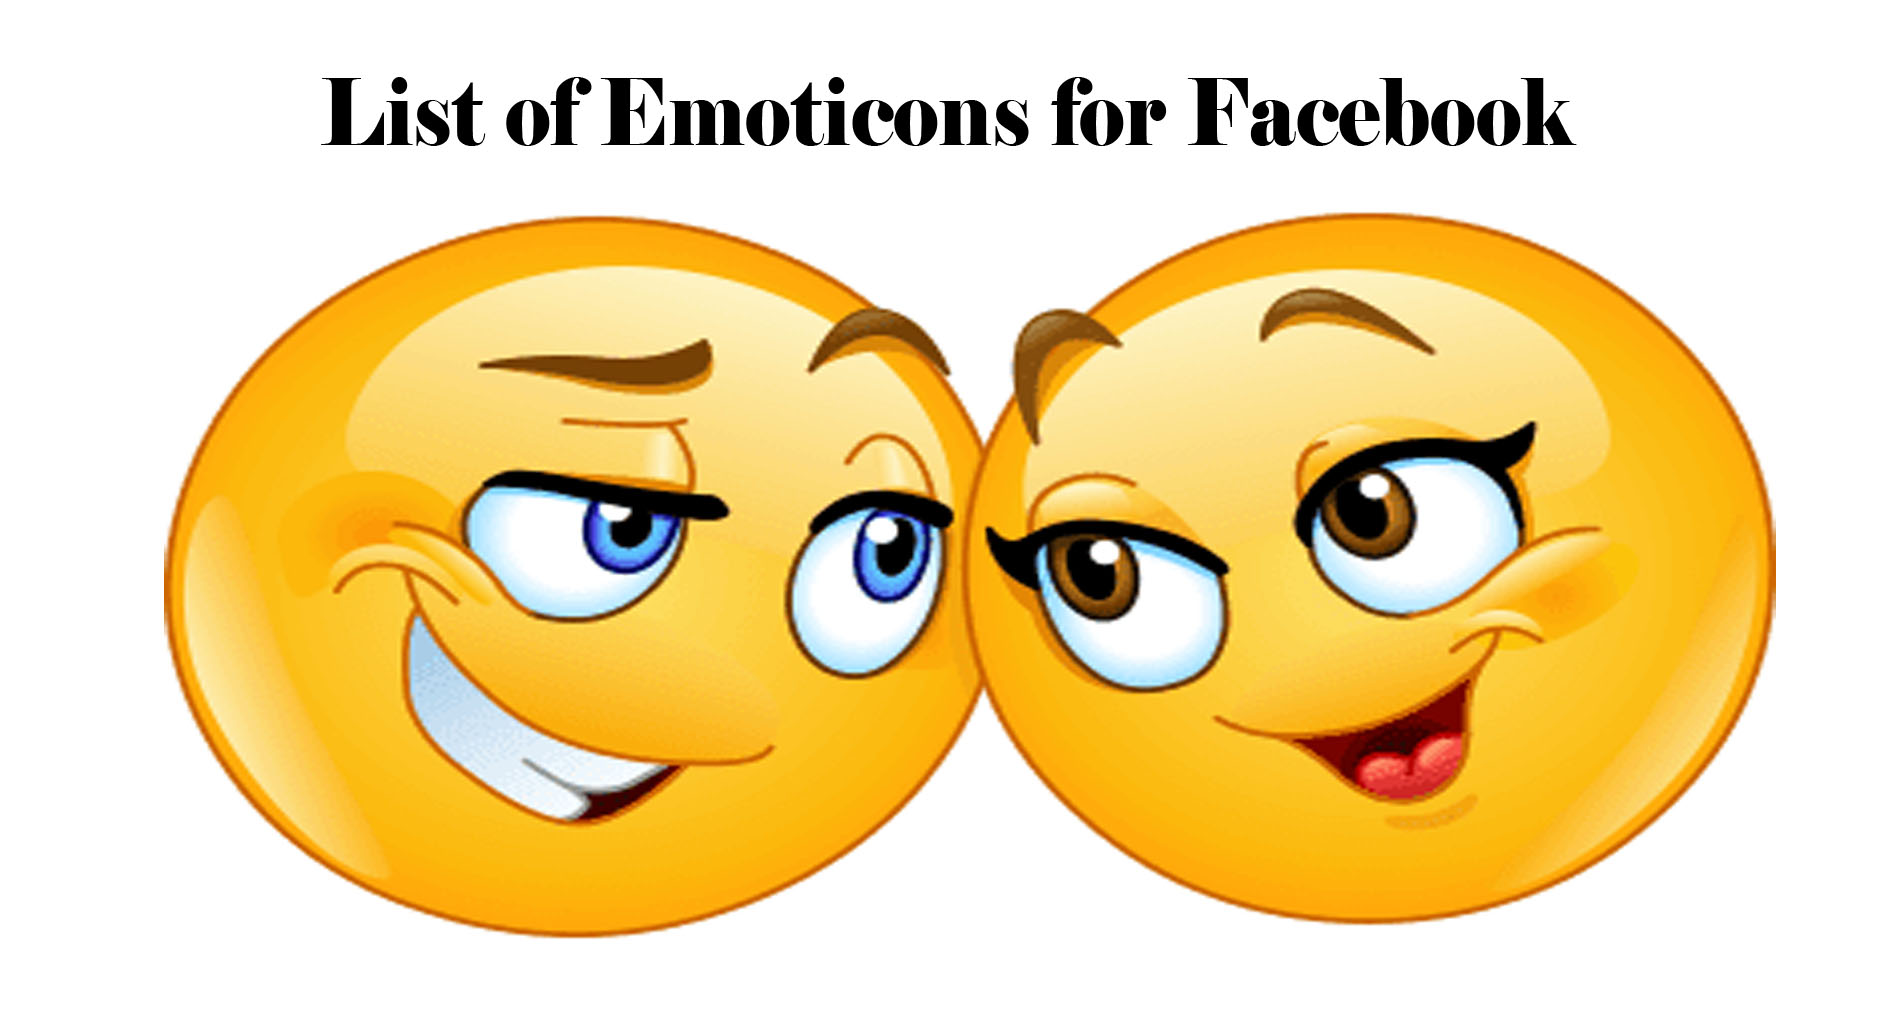 List of Emoticons for Facebook - Facebook Emoji